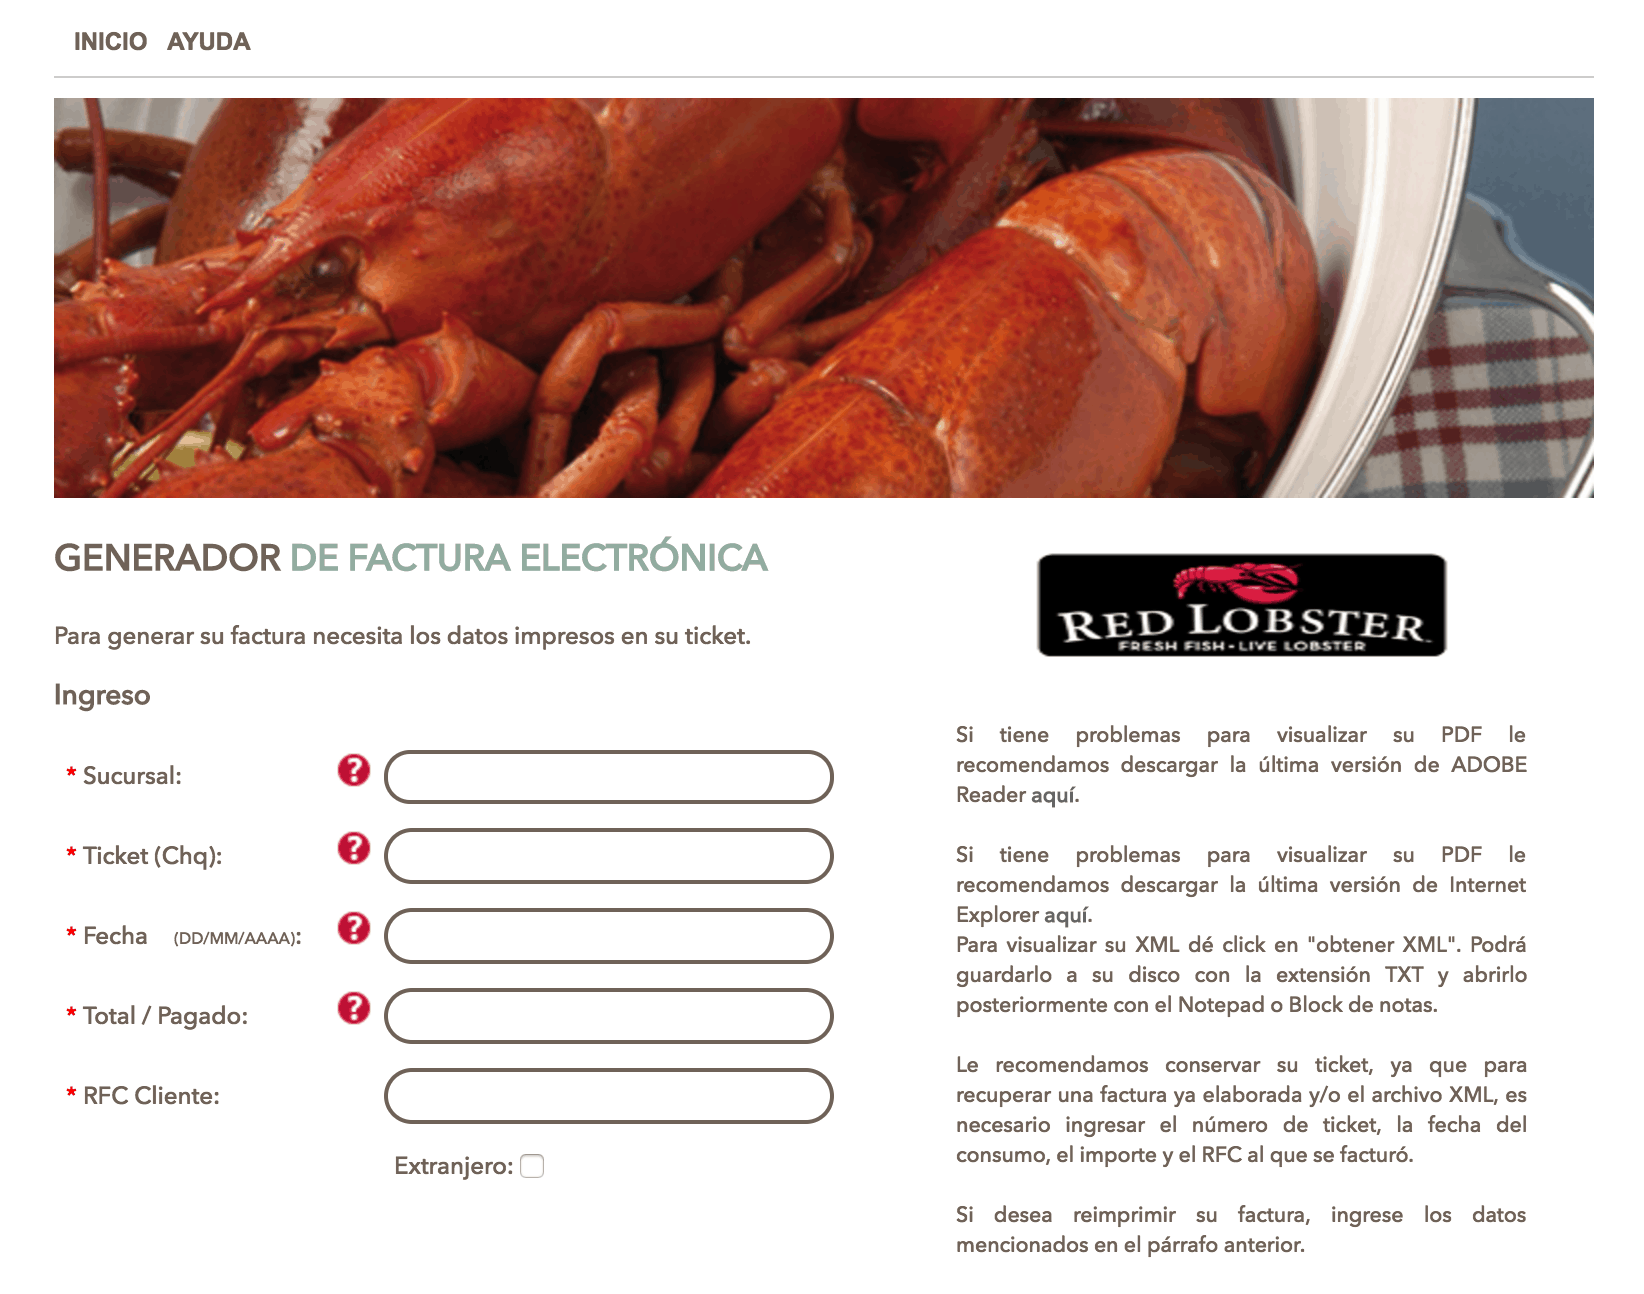 RED LOBSTER FACTURACION